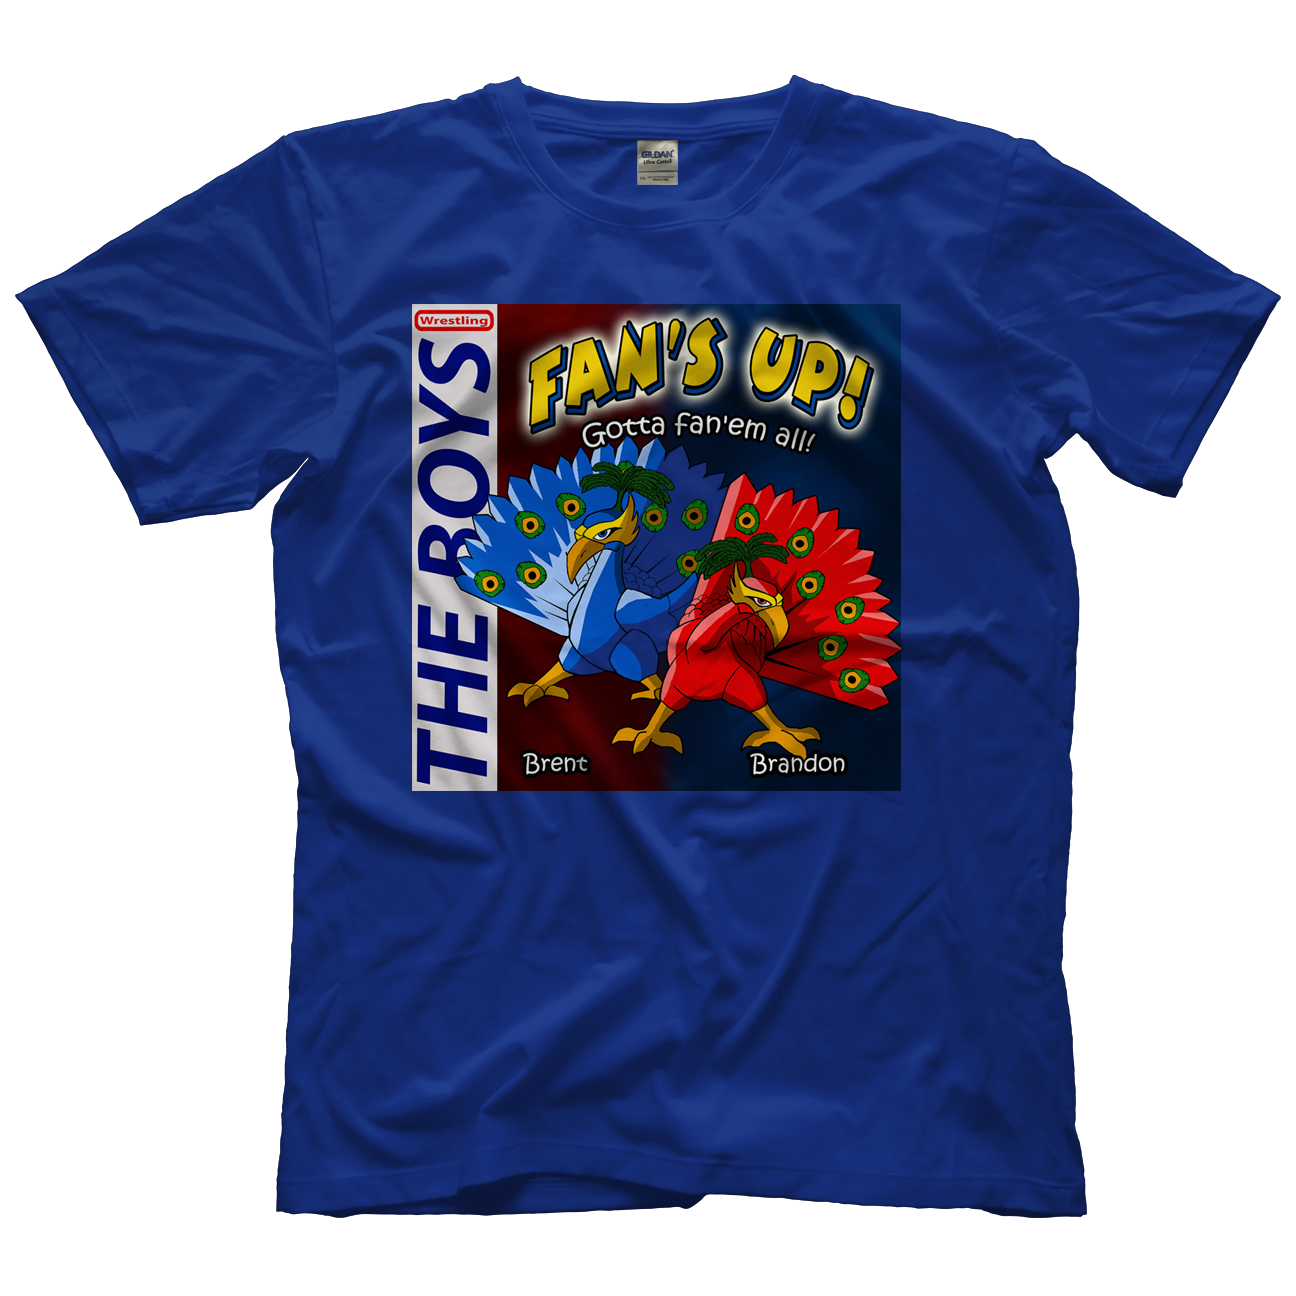 The Boys Fan Up Blue T-shirt